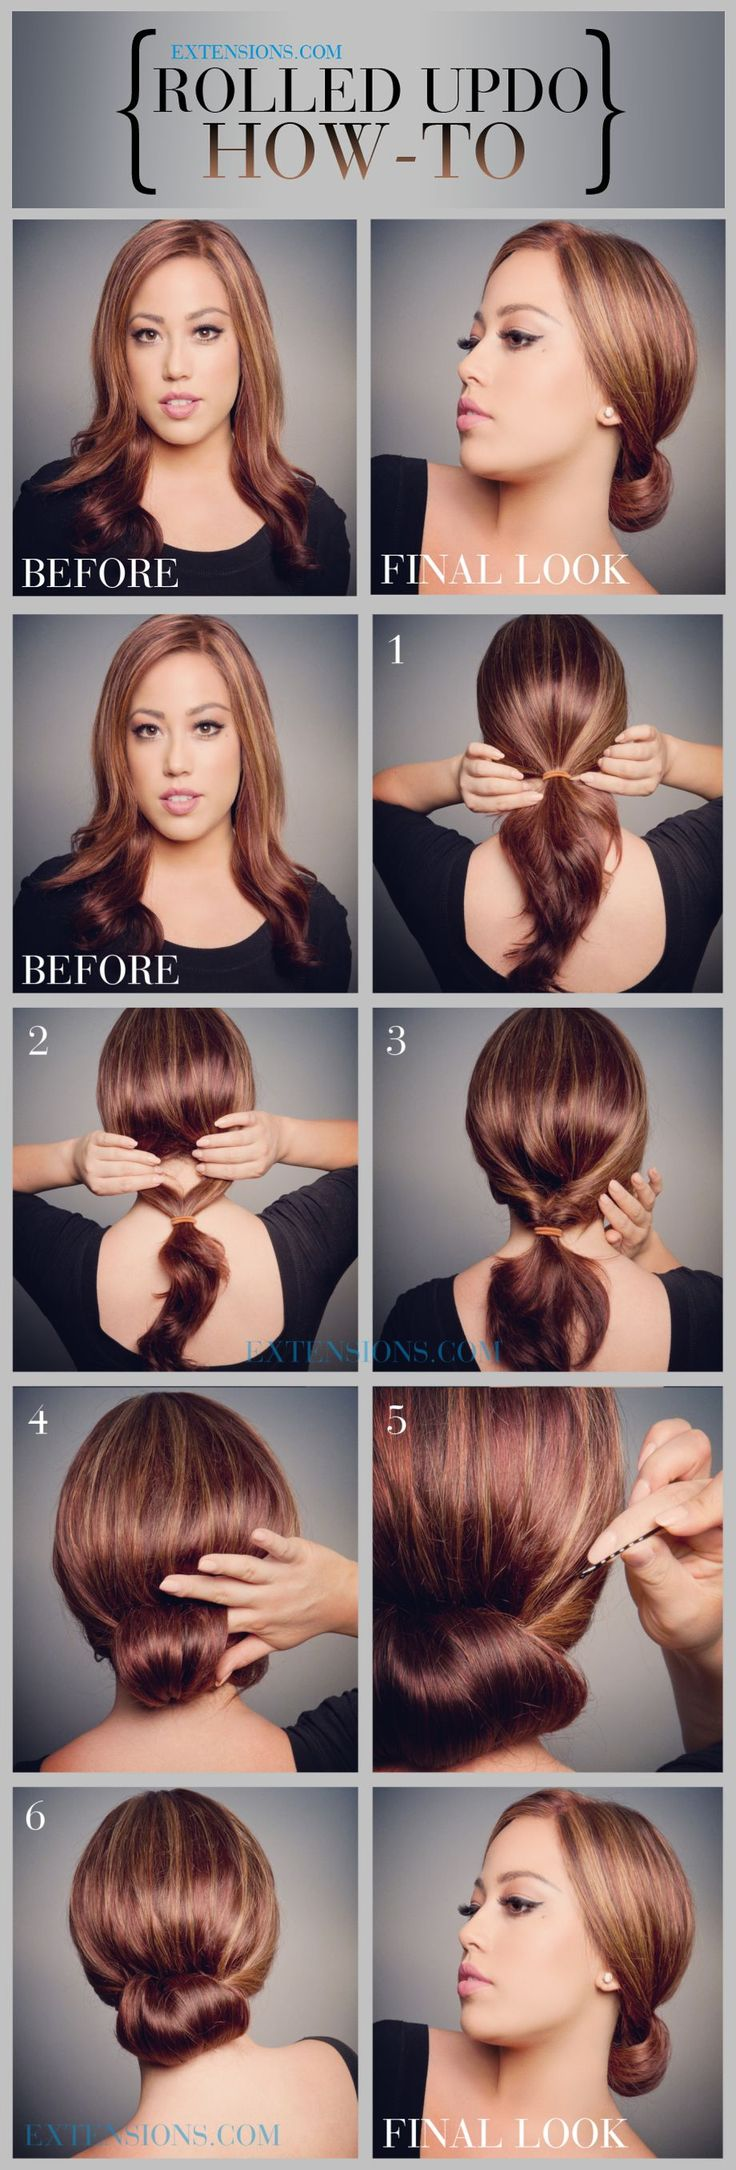 best hair styles images on pinterest hairstyles braids and colors